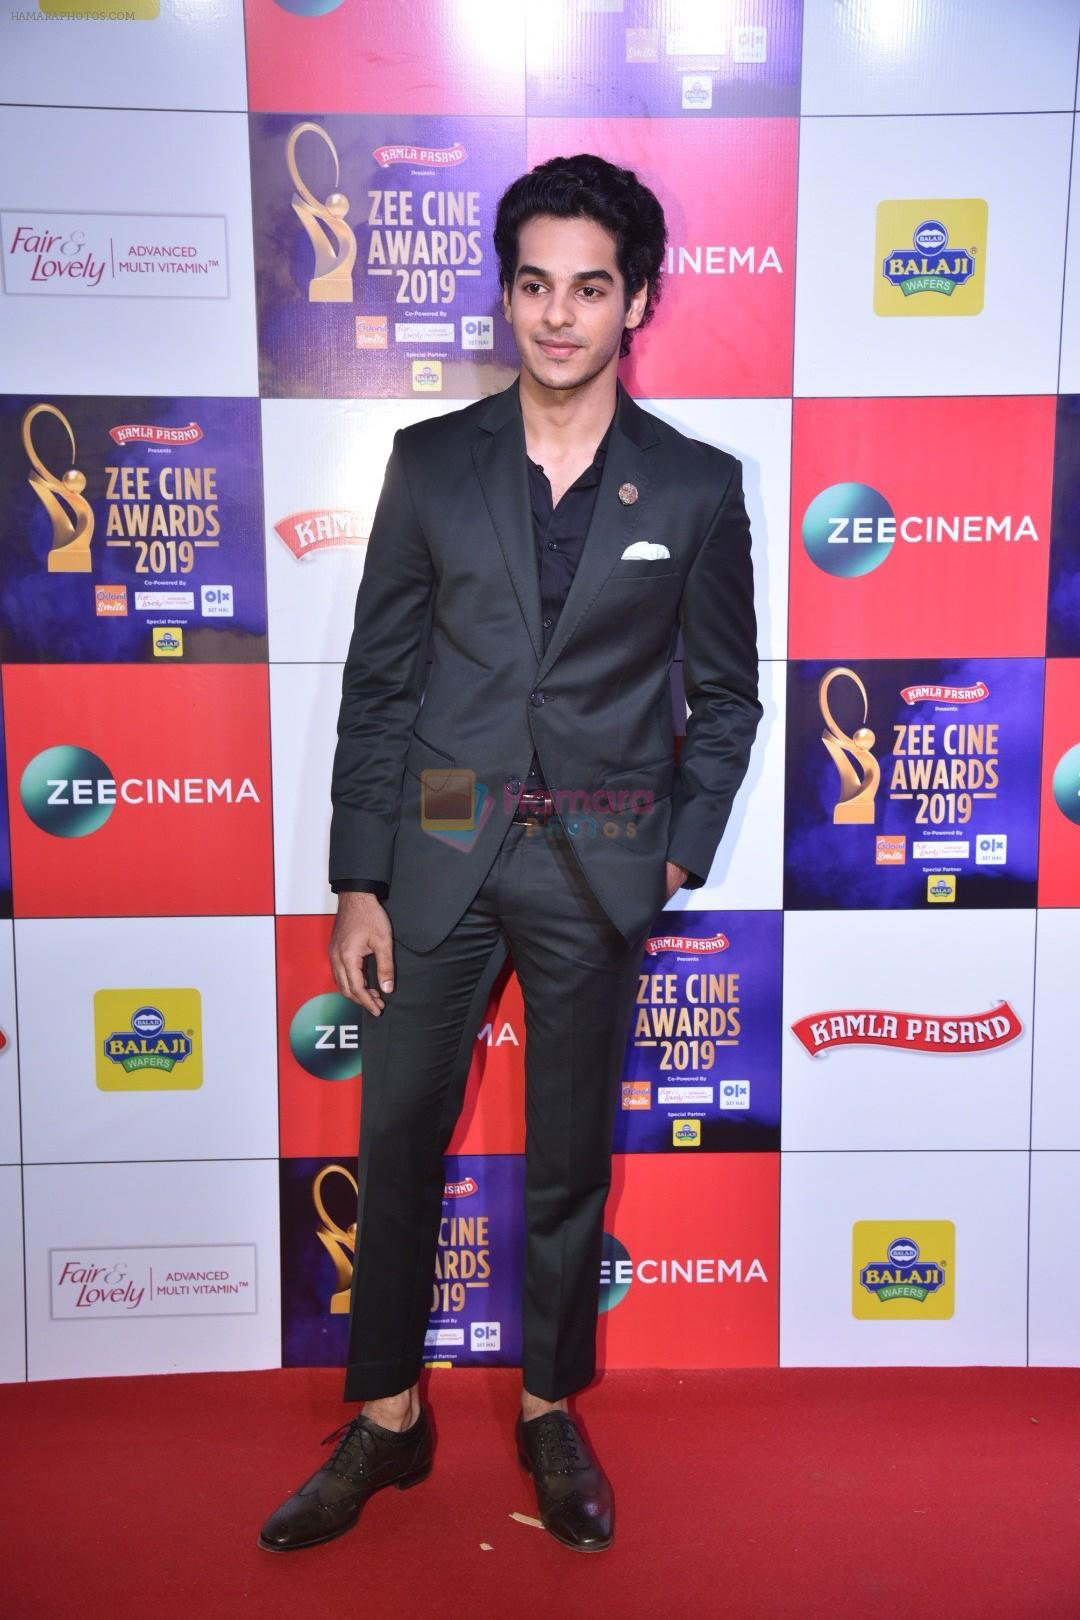 Ishaan Khattar at Zee cine awards red carpet on 19th March 2019